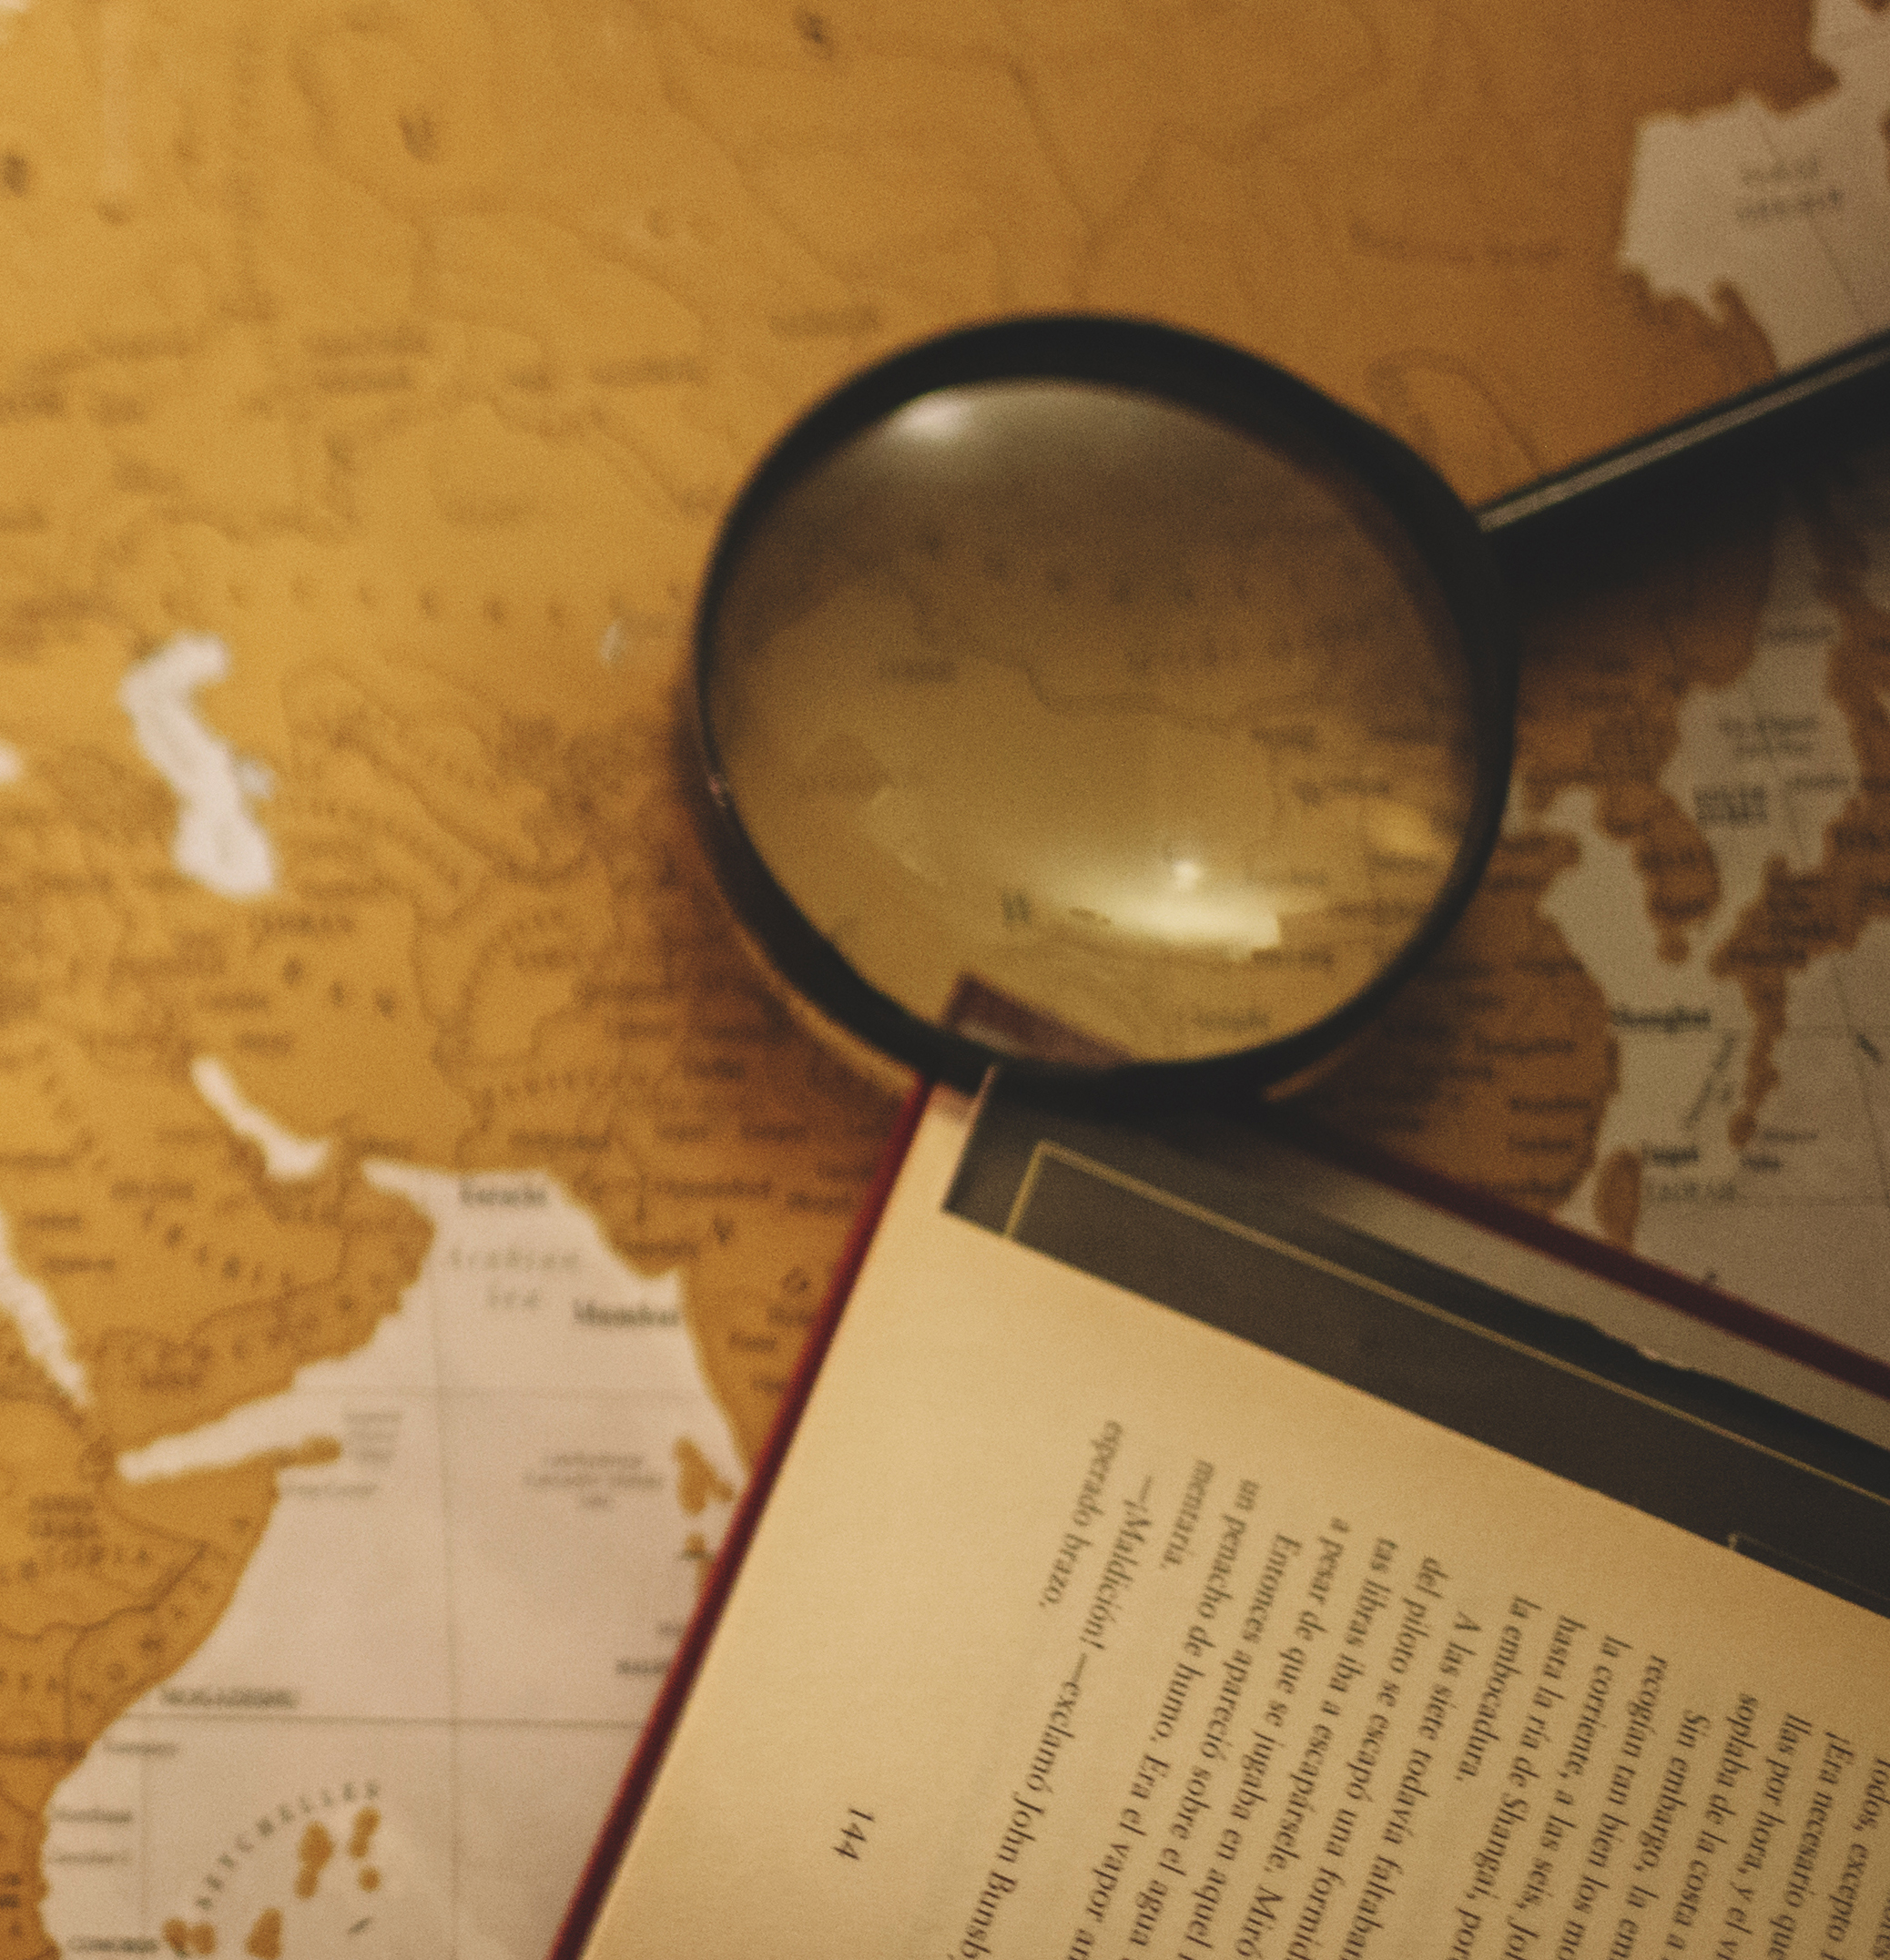 Photograph of a magnifying glass, an open book and a map